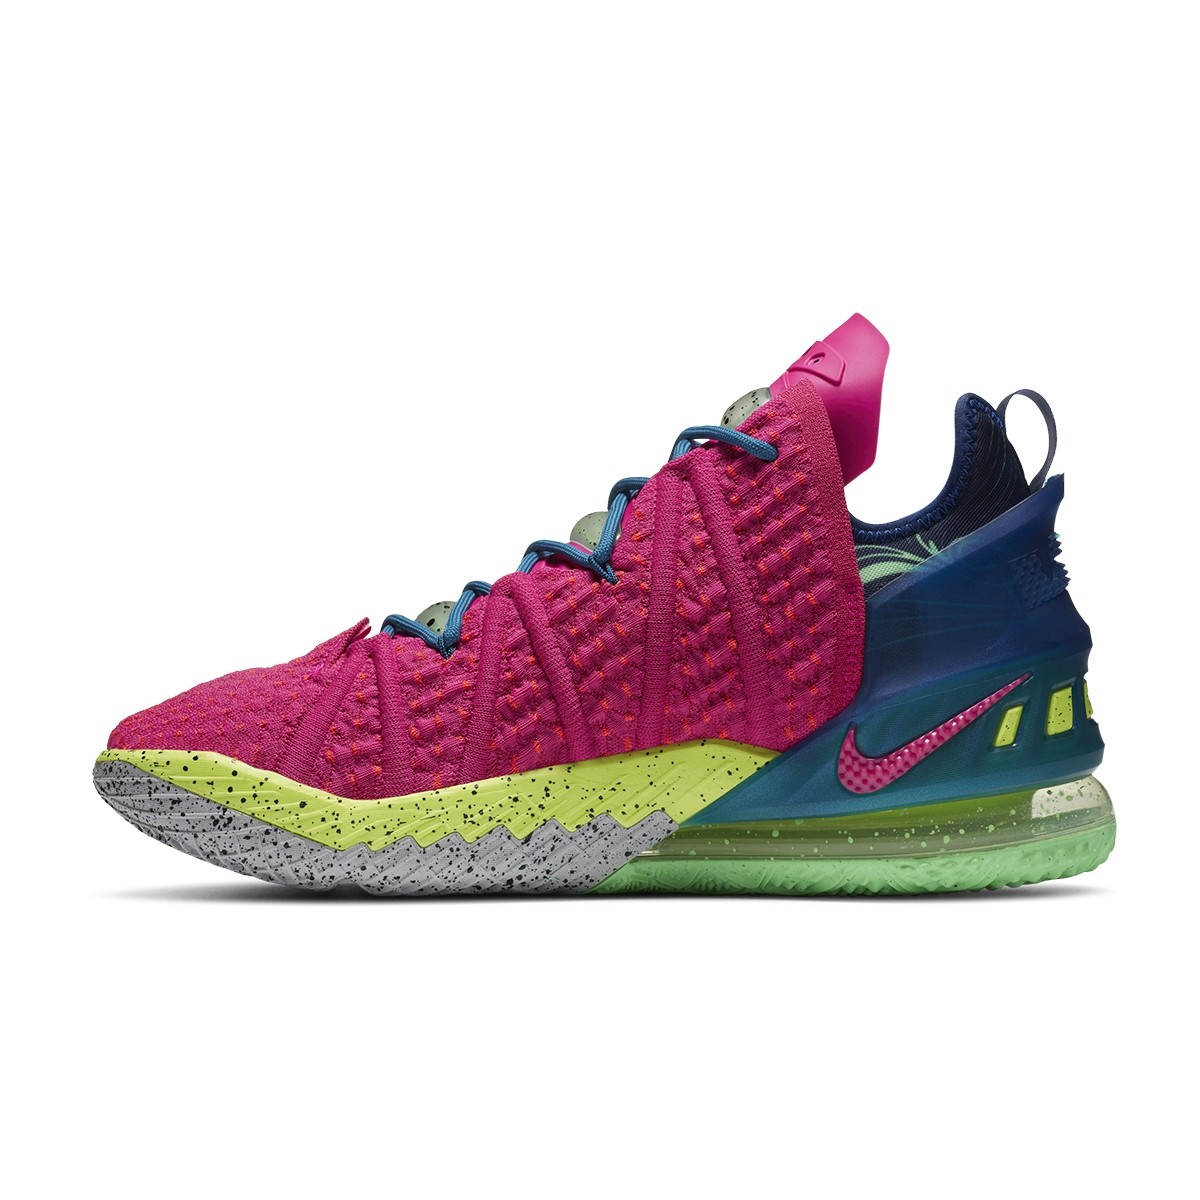 Nike LeBron 18 'Los Angeles By Night'-DB8148-600